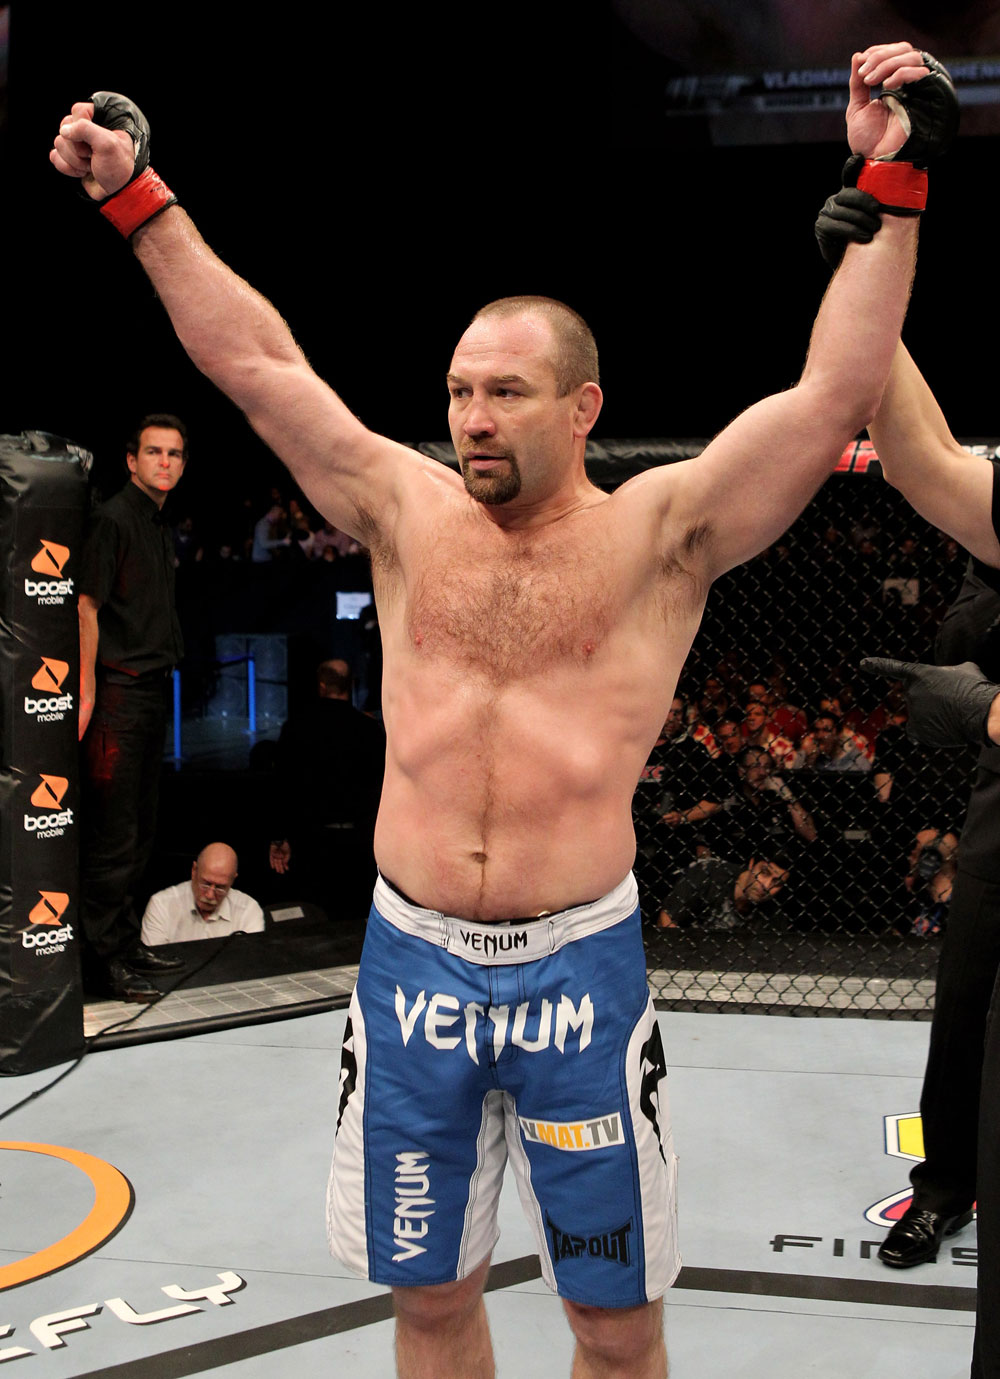 Vladimir Matyushenko Belarus celebrates his victory by tko in the 1st round over Alexandre Ferreira of Brazil during their UFC Light-Heavyweight bout at the Konig Pilsner Arena on November 13, 2010 in Oberhausen, Germany. (Photo by Josh Hedges/Zuffa LLC/Zuffa LLC)